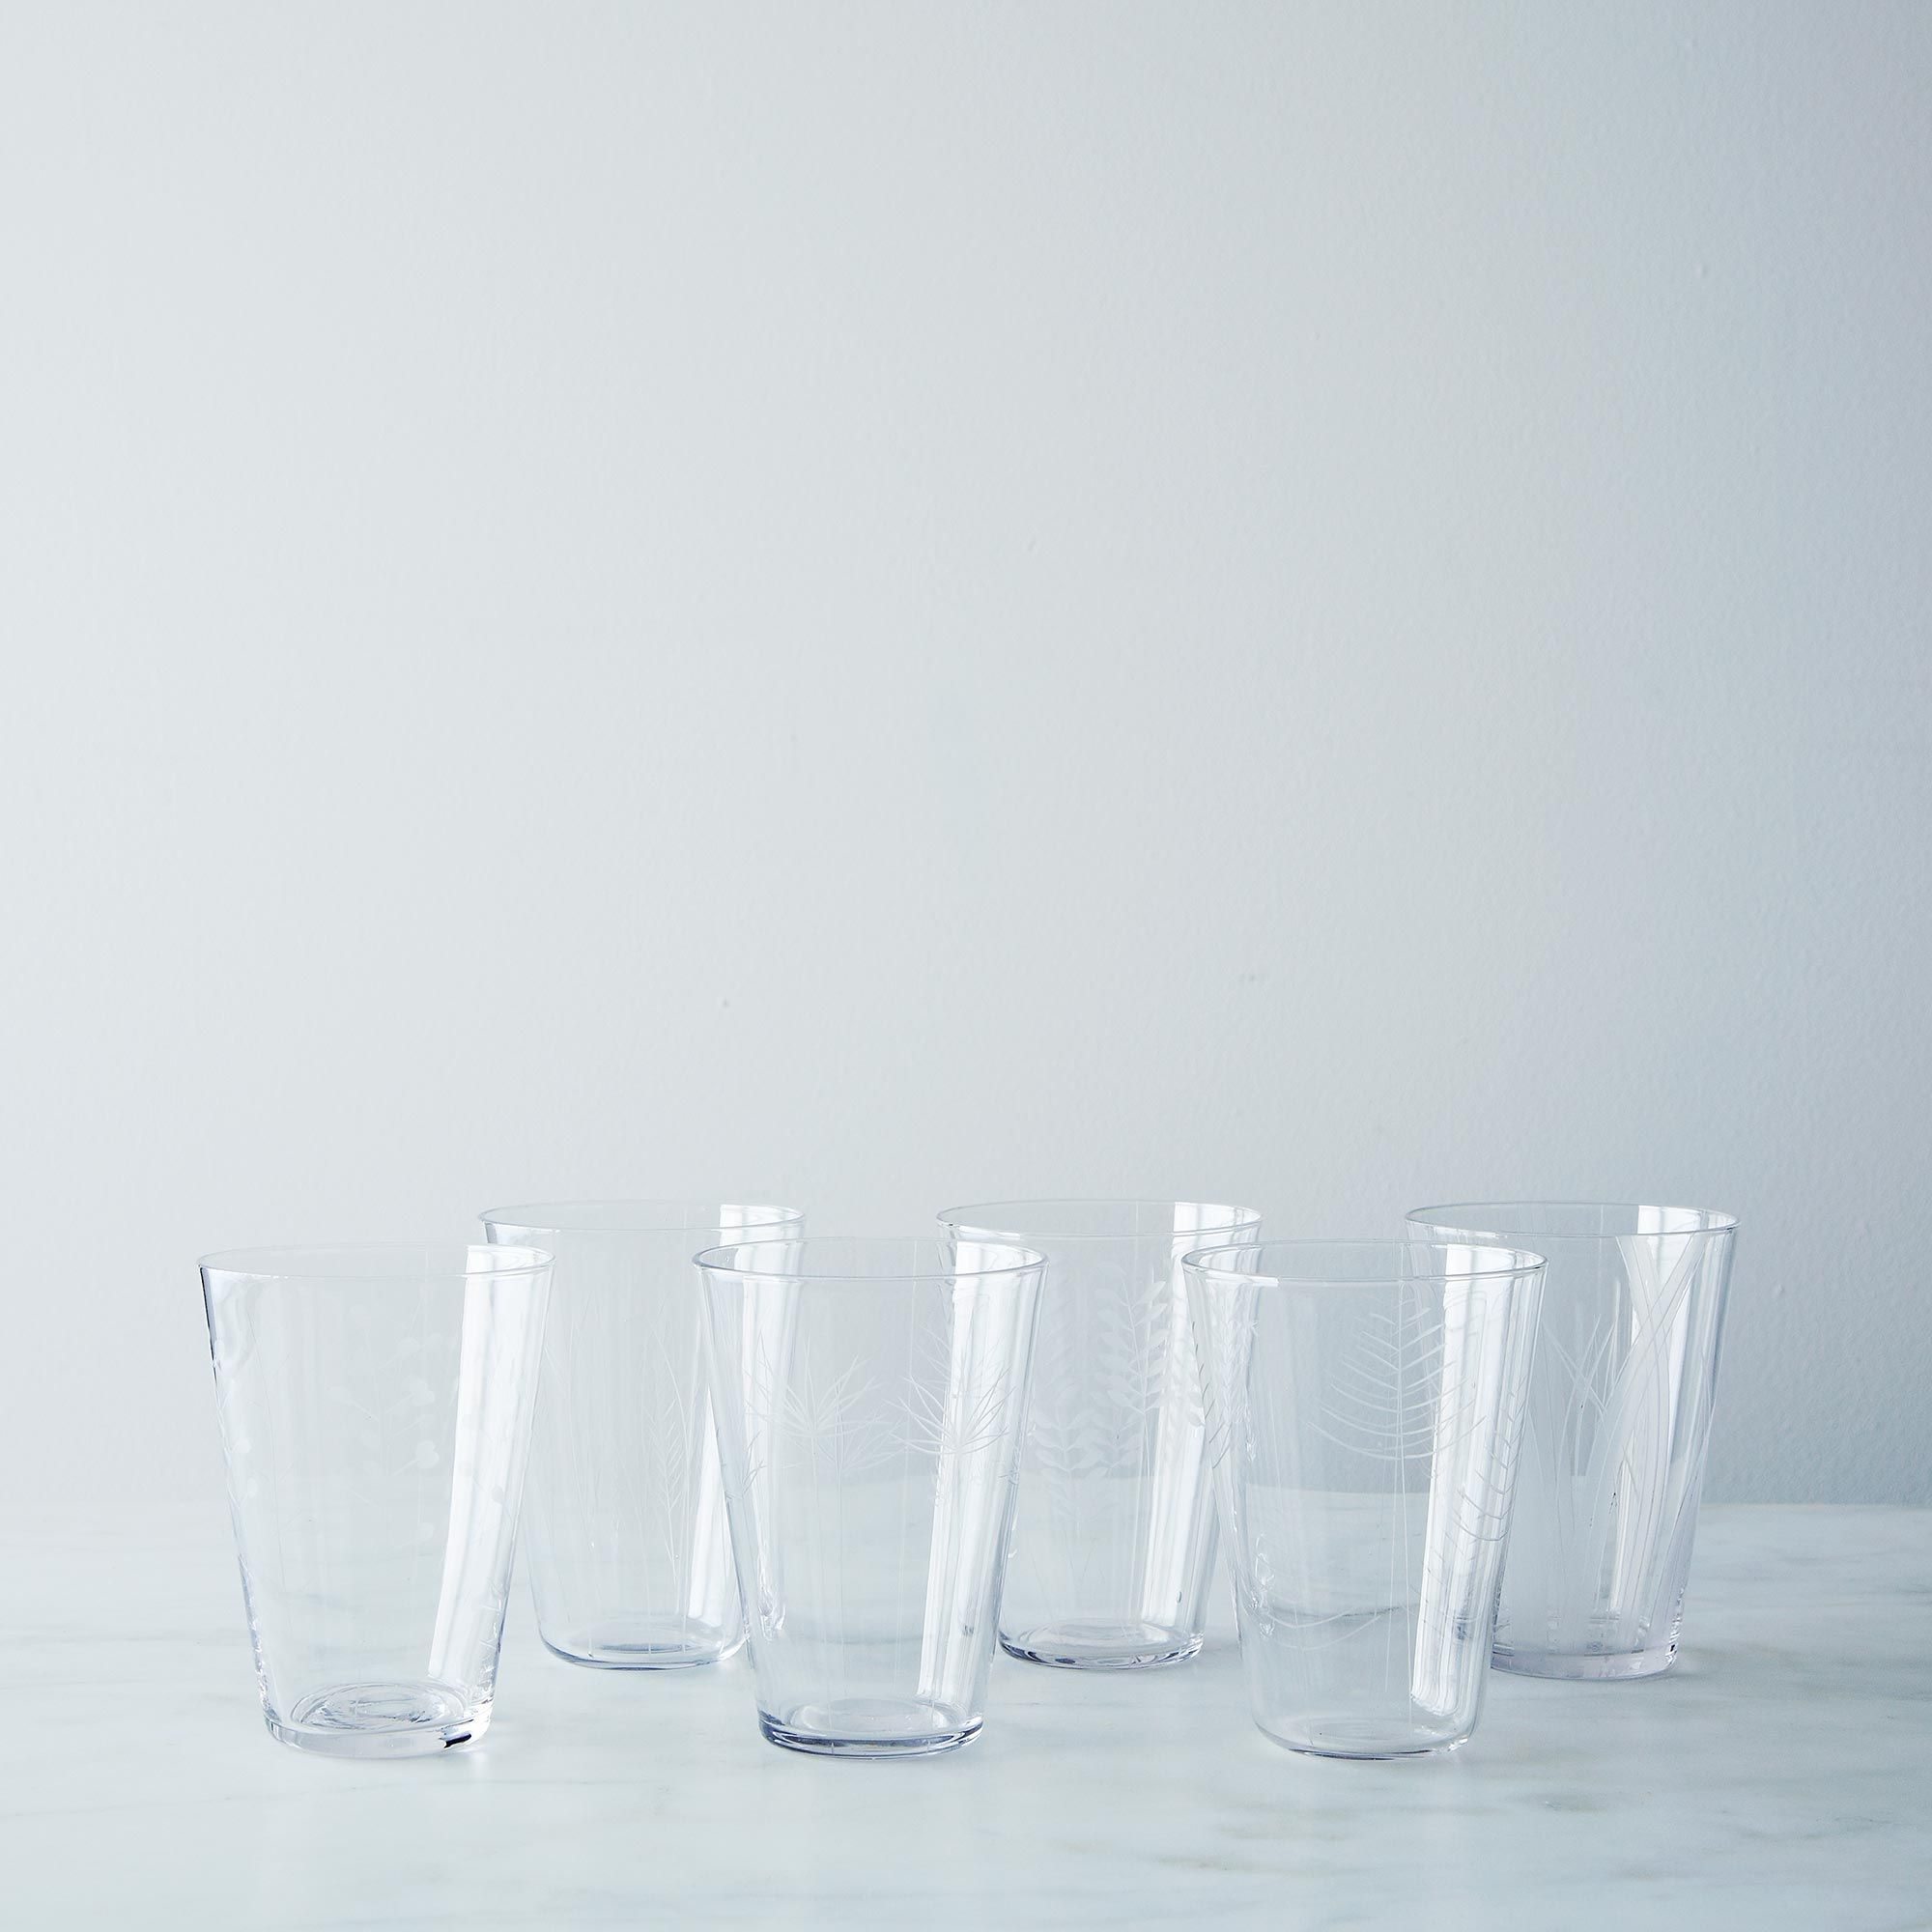 9081d860-a0f5-11e5-a190-0ef7535729df--2013-1118_global-table_etched-glasses-009